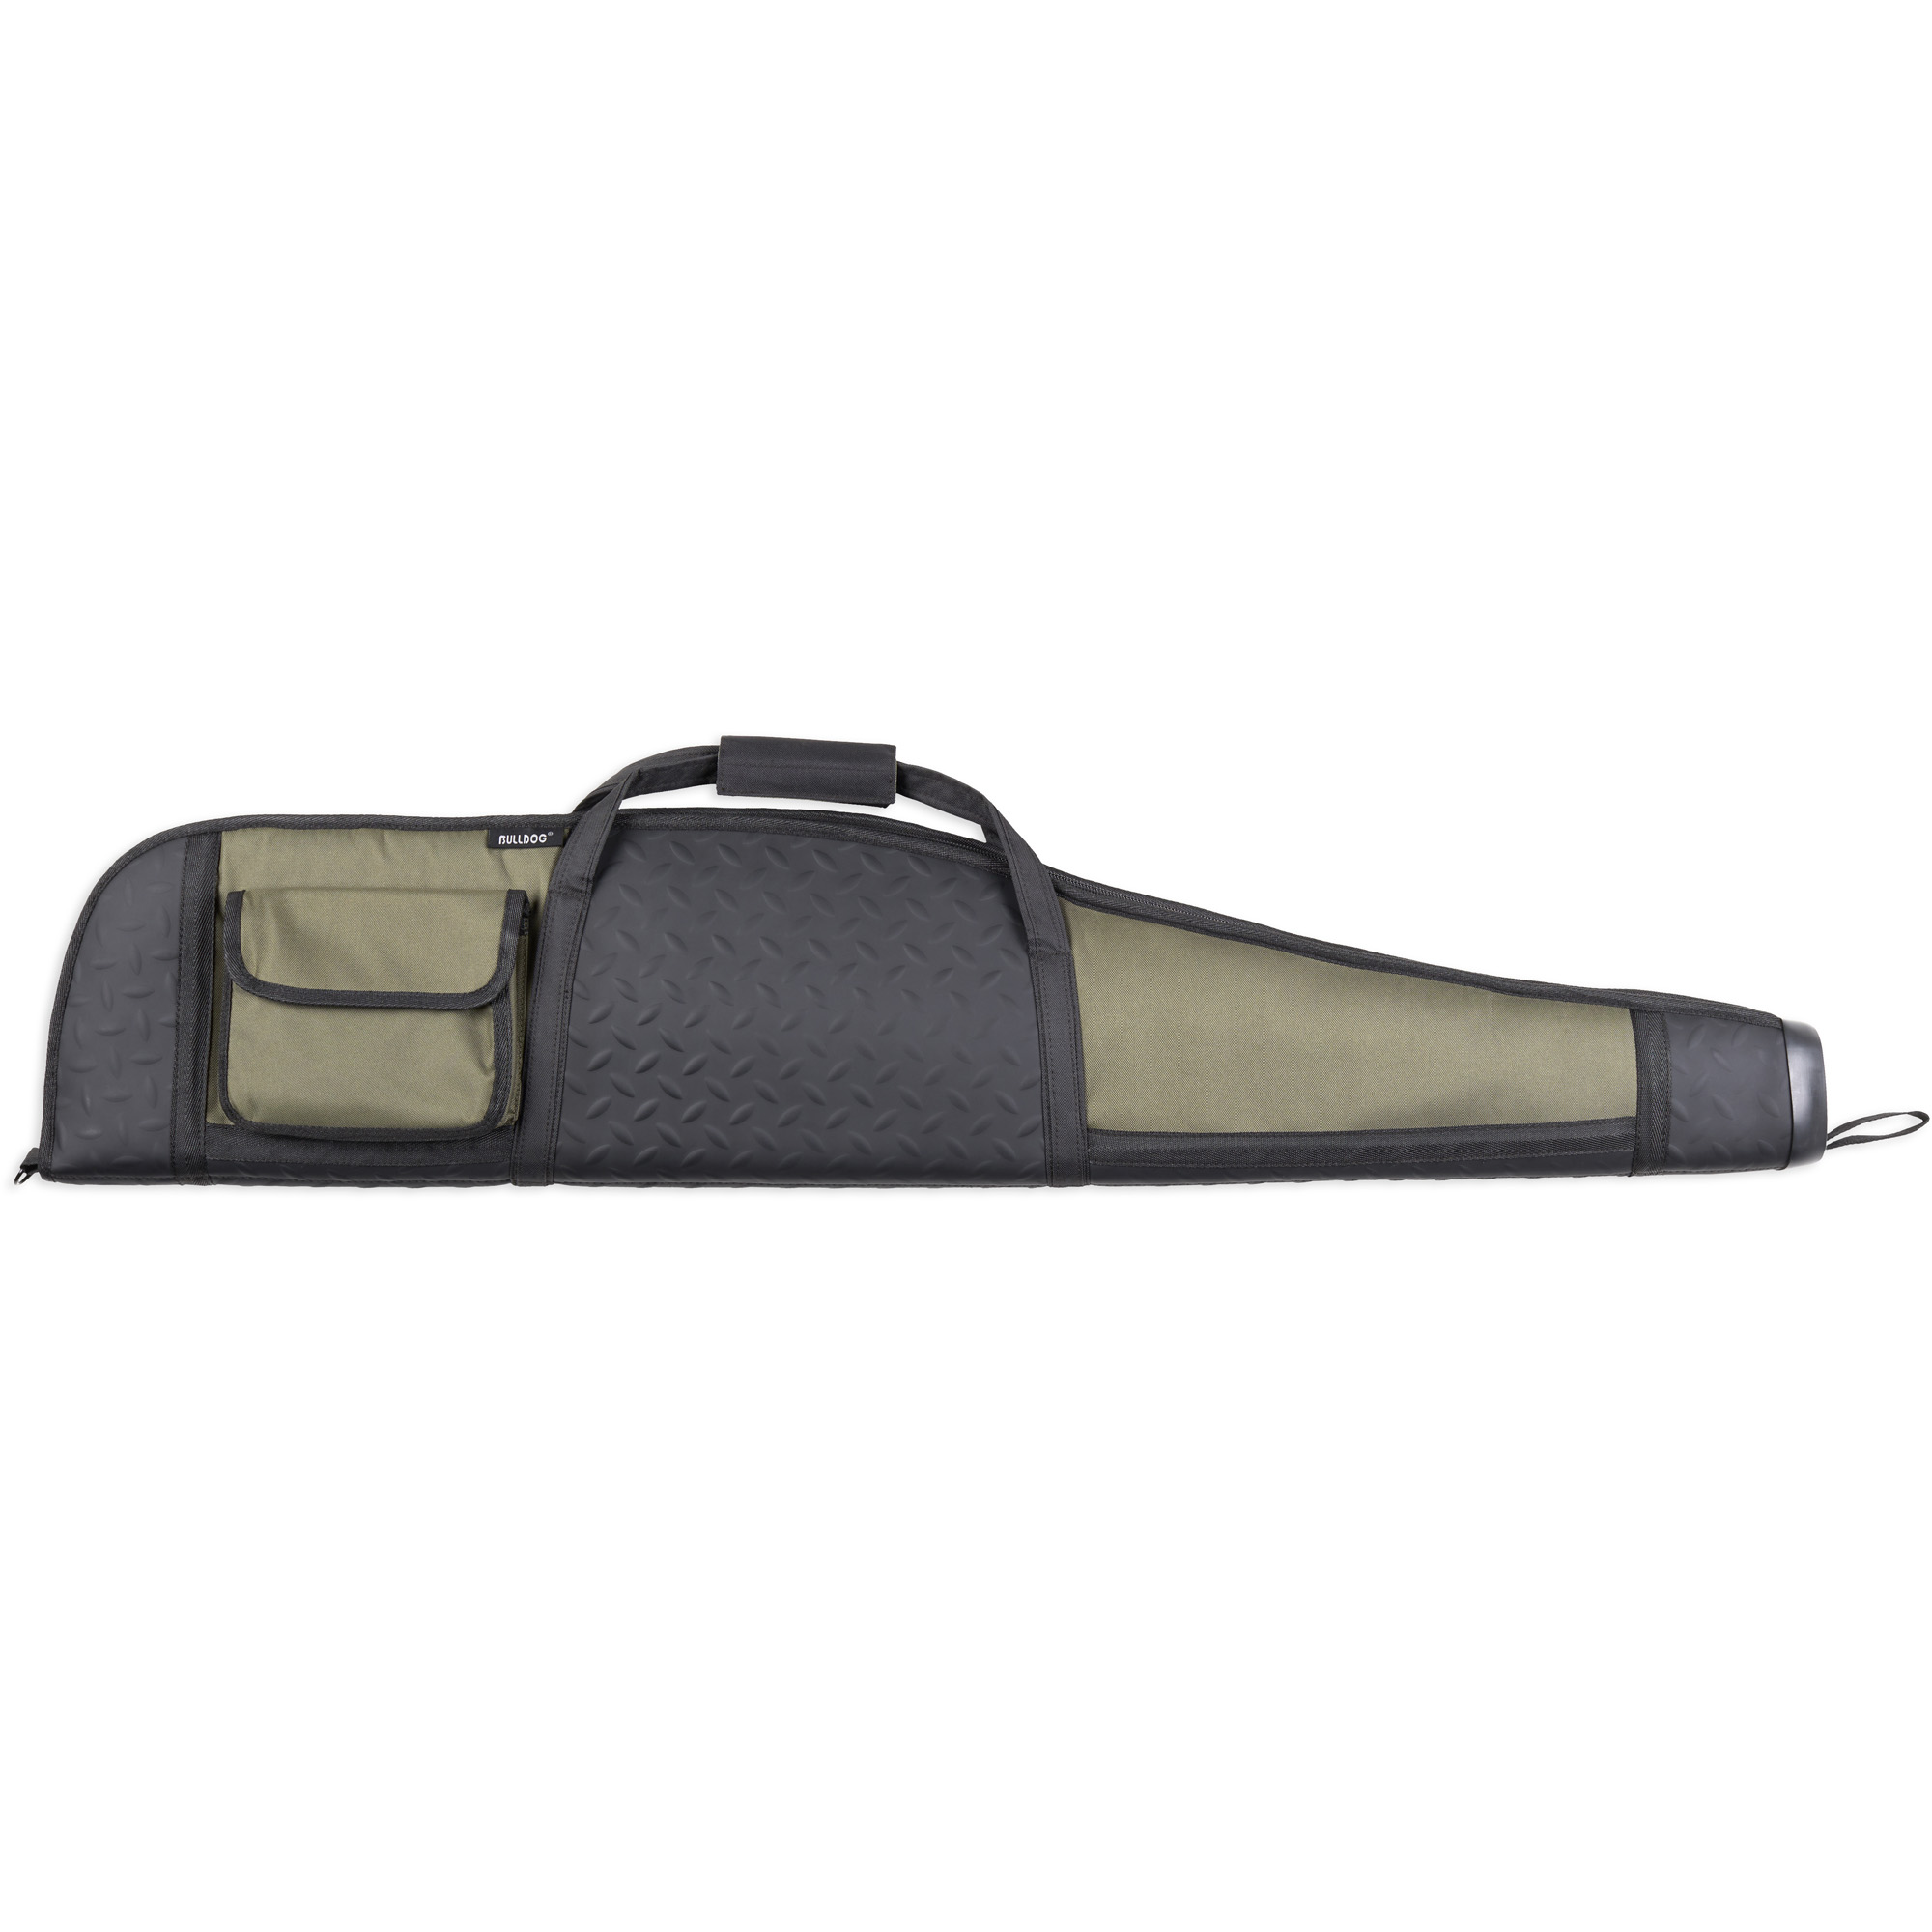 Bulldog Armor Case Rifle Grn/blk 48